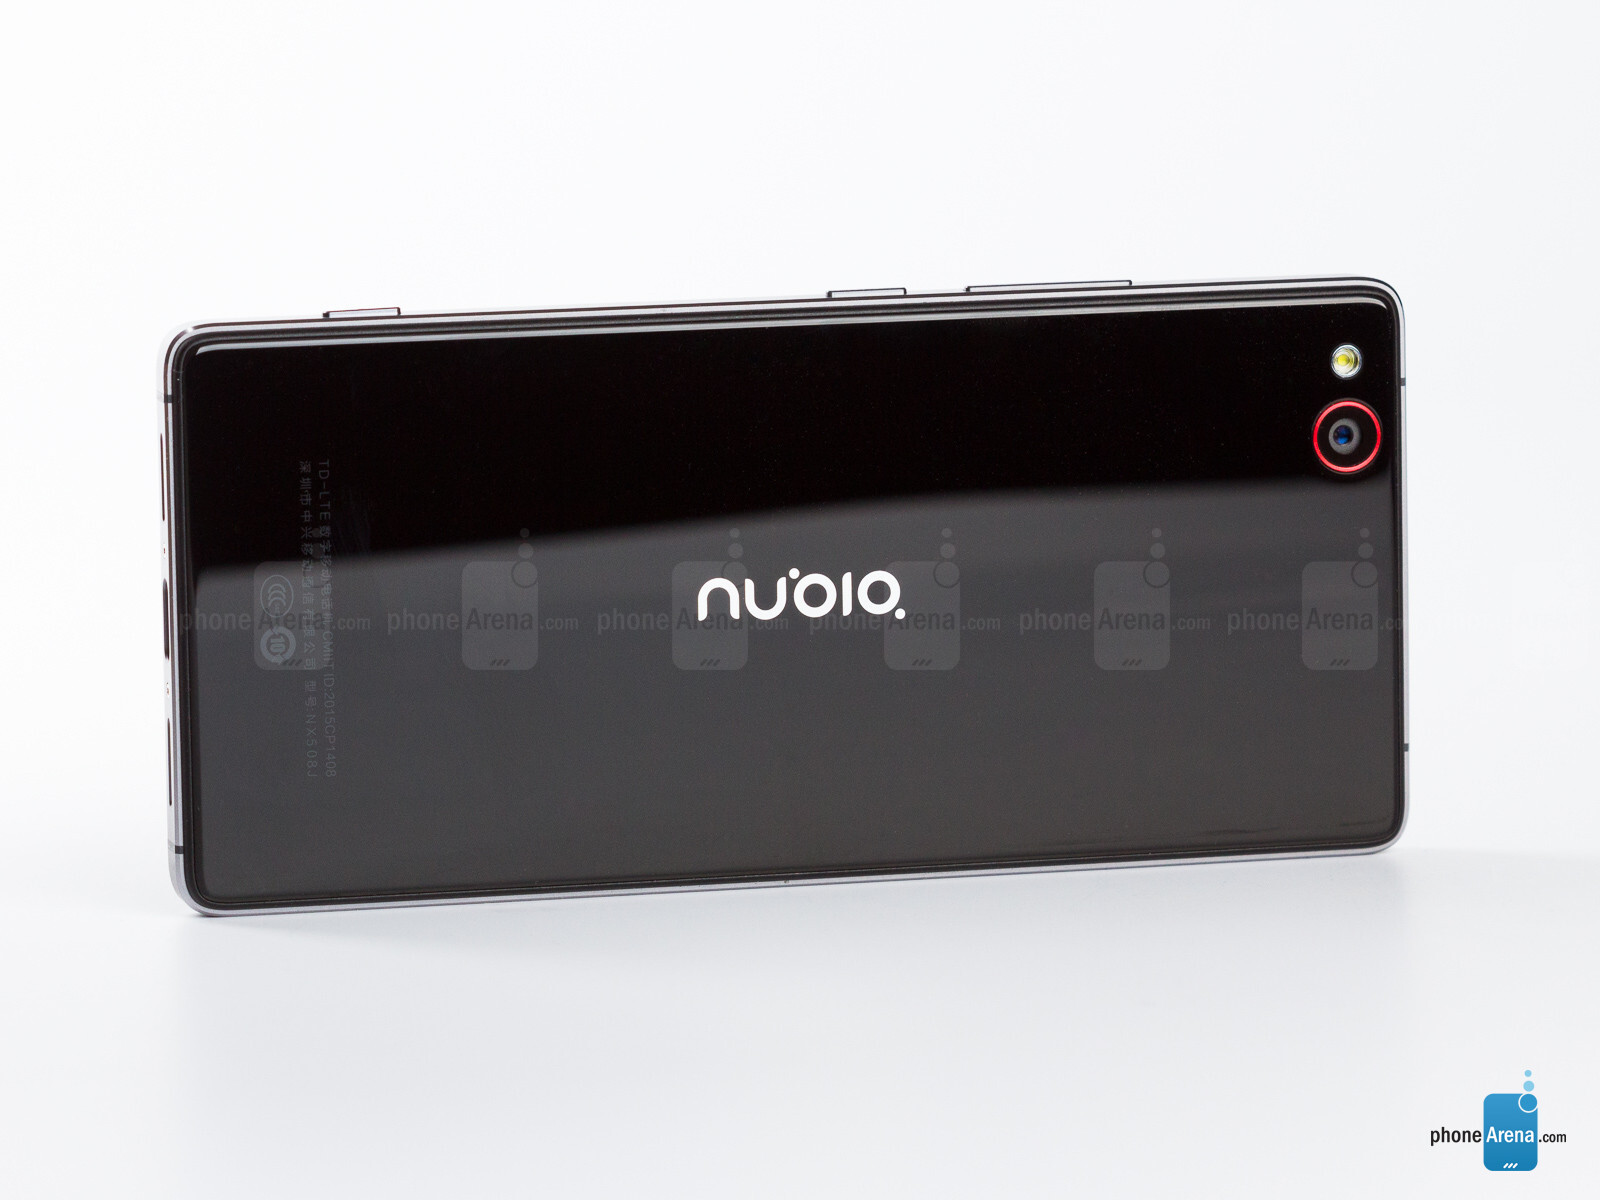 Only available zte nubia z9 review from just